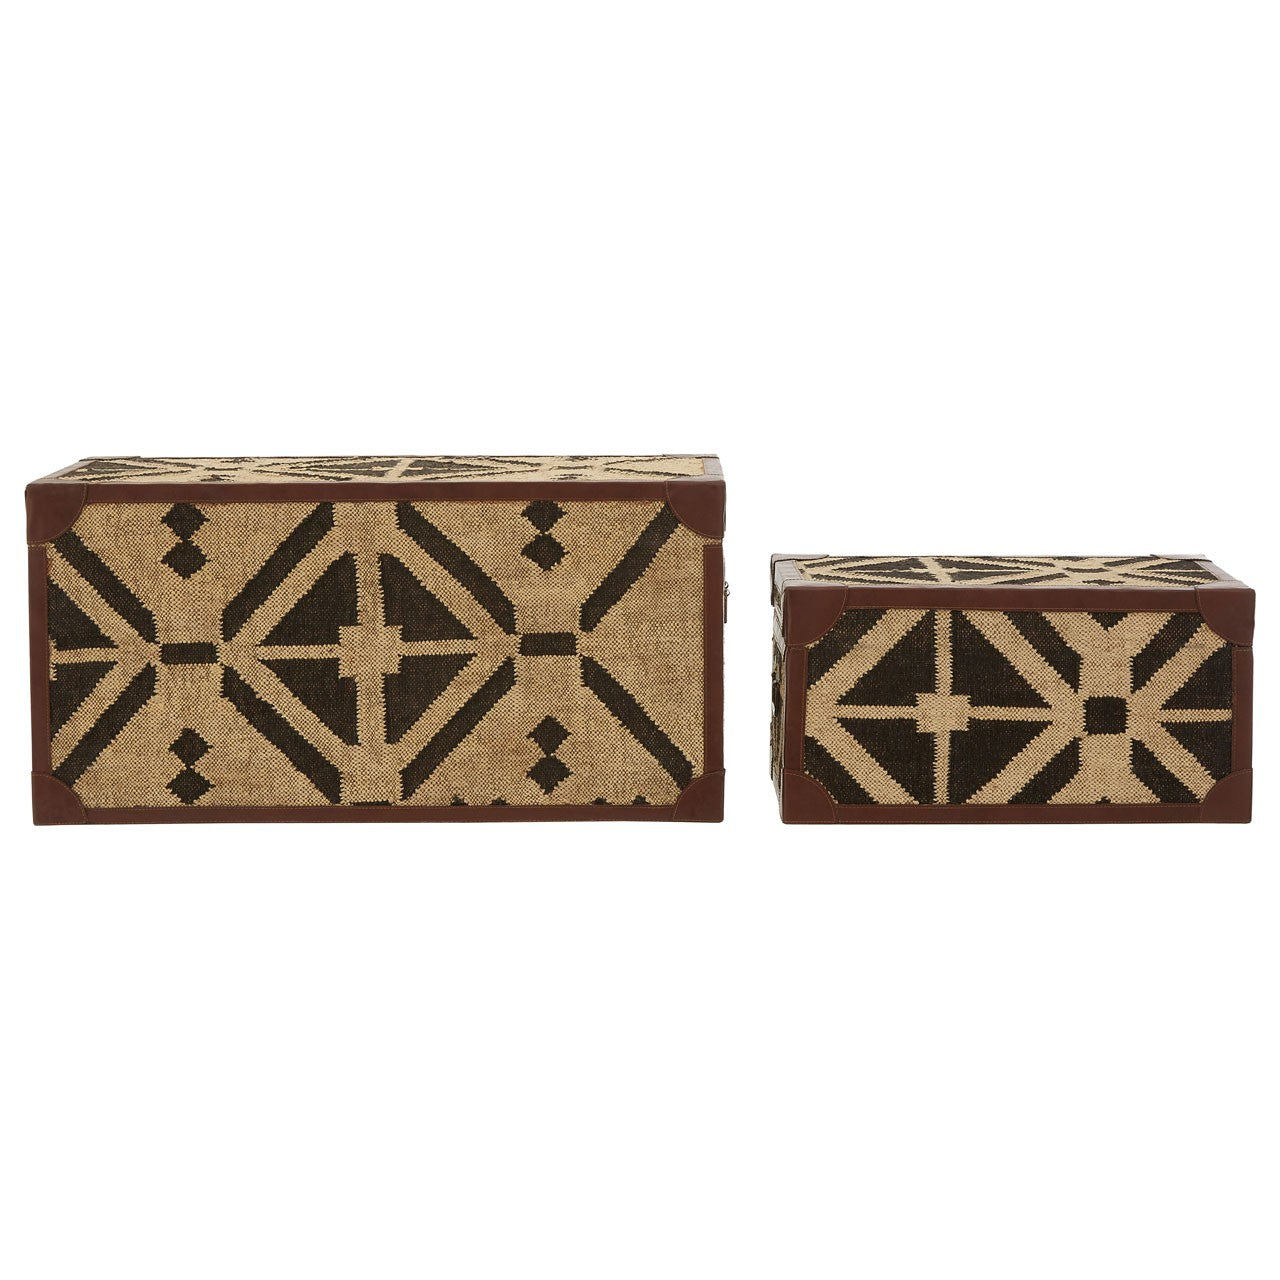 Aztec Storage Trunks (Set Of 2) - Back